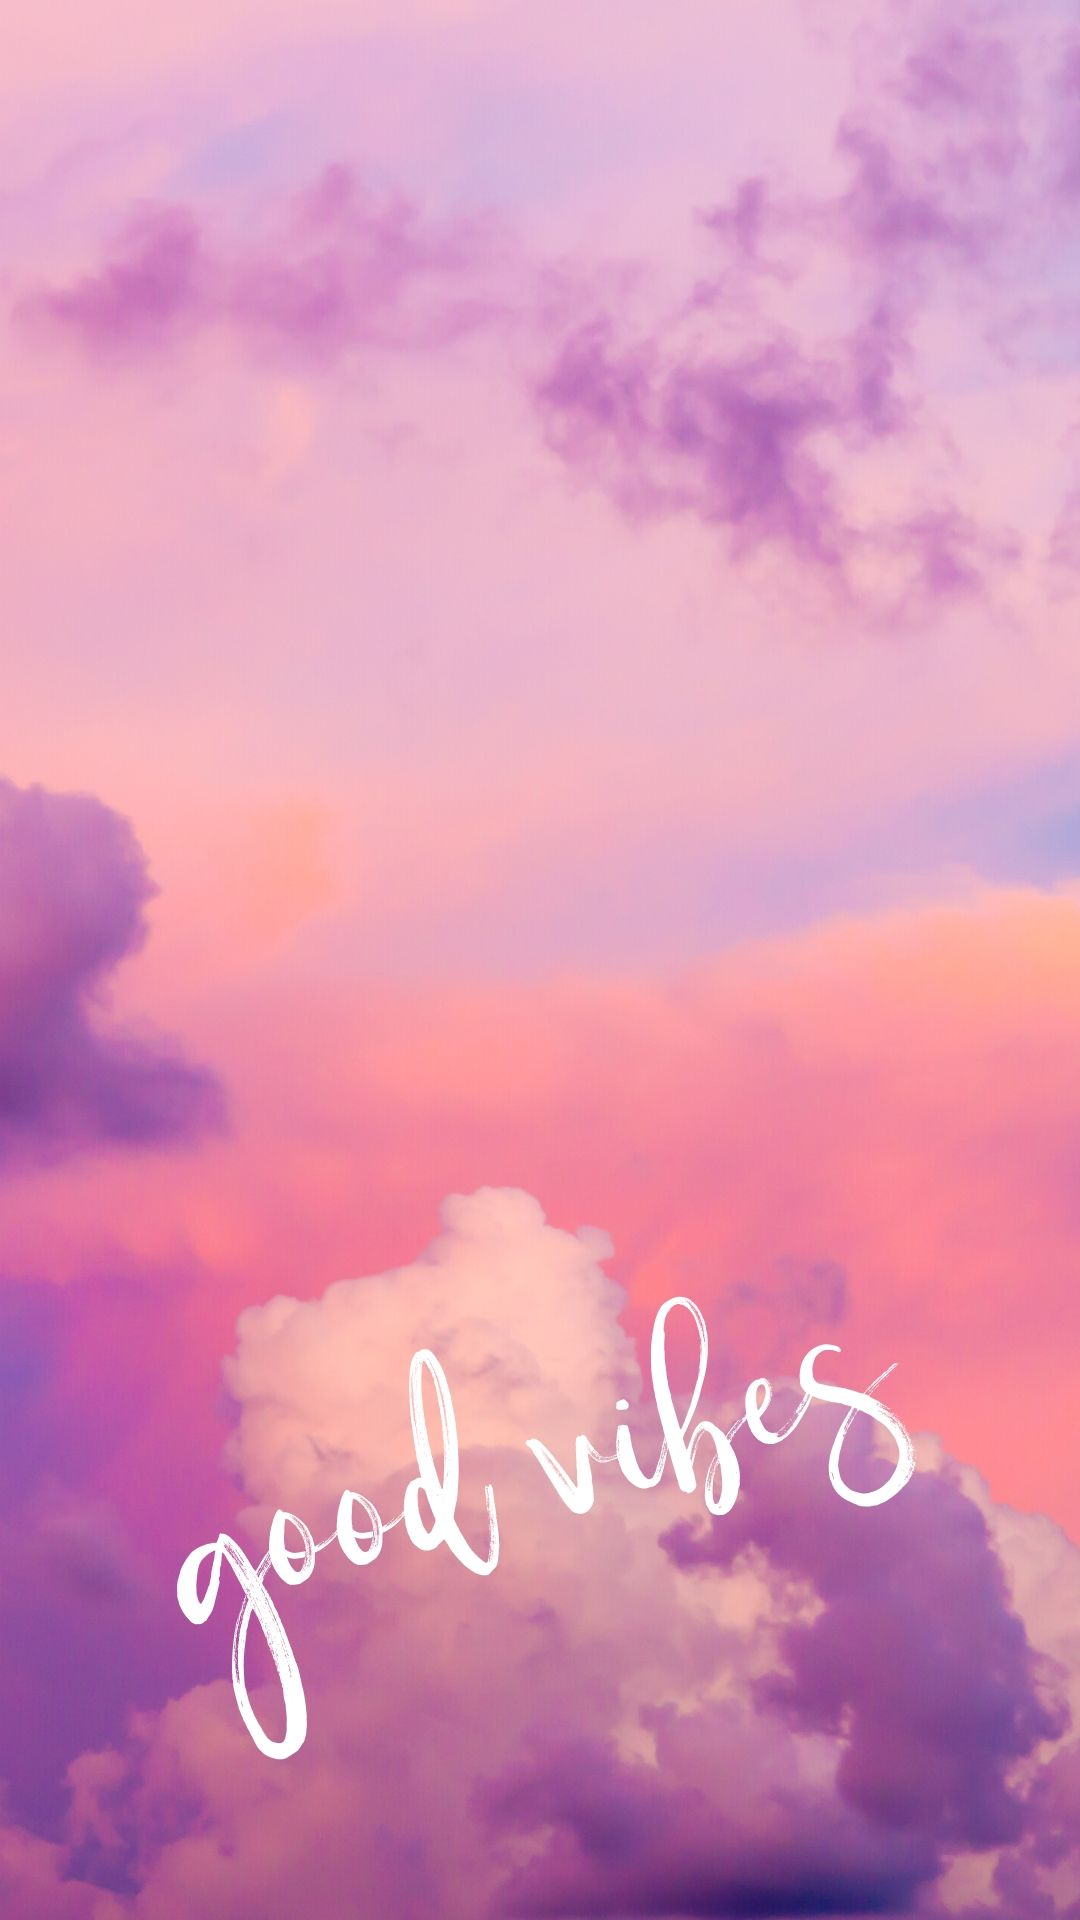 Pink Aesthetic Quote Backgrounds for 2020